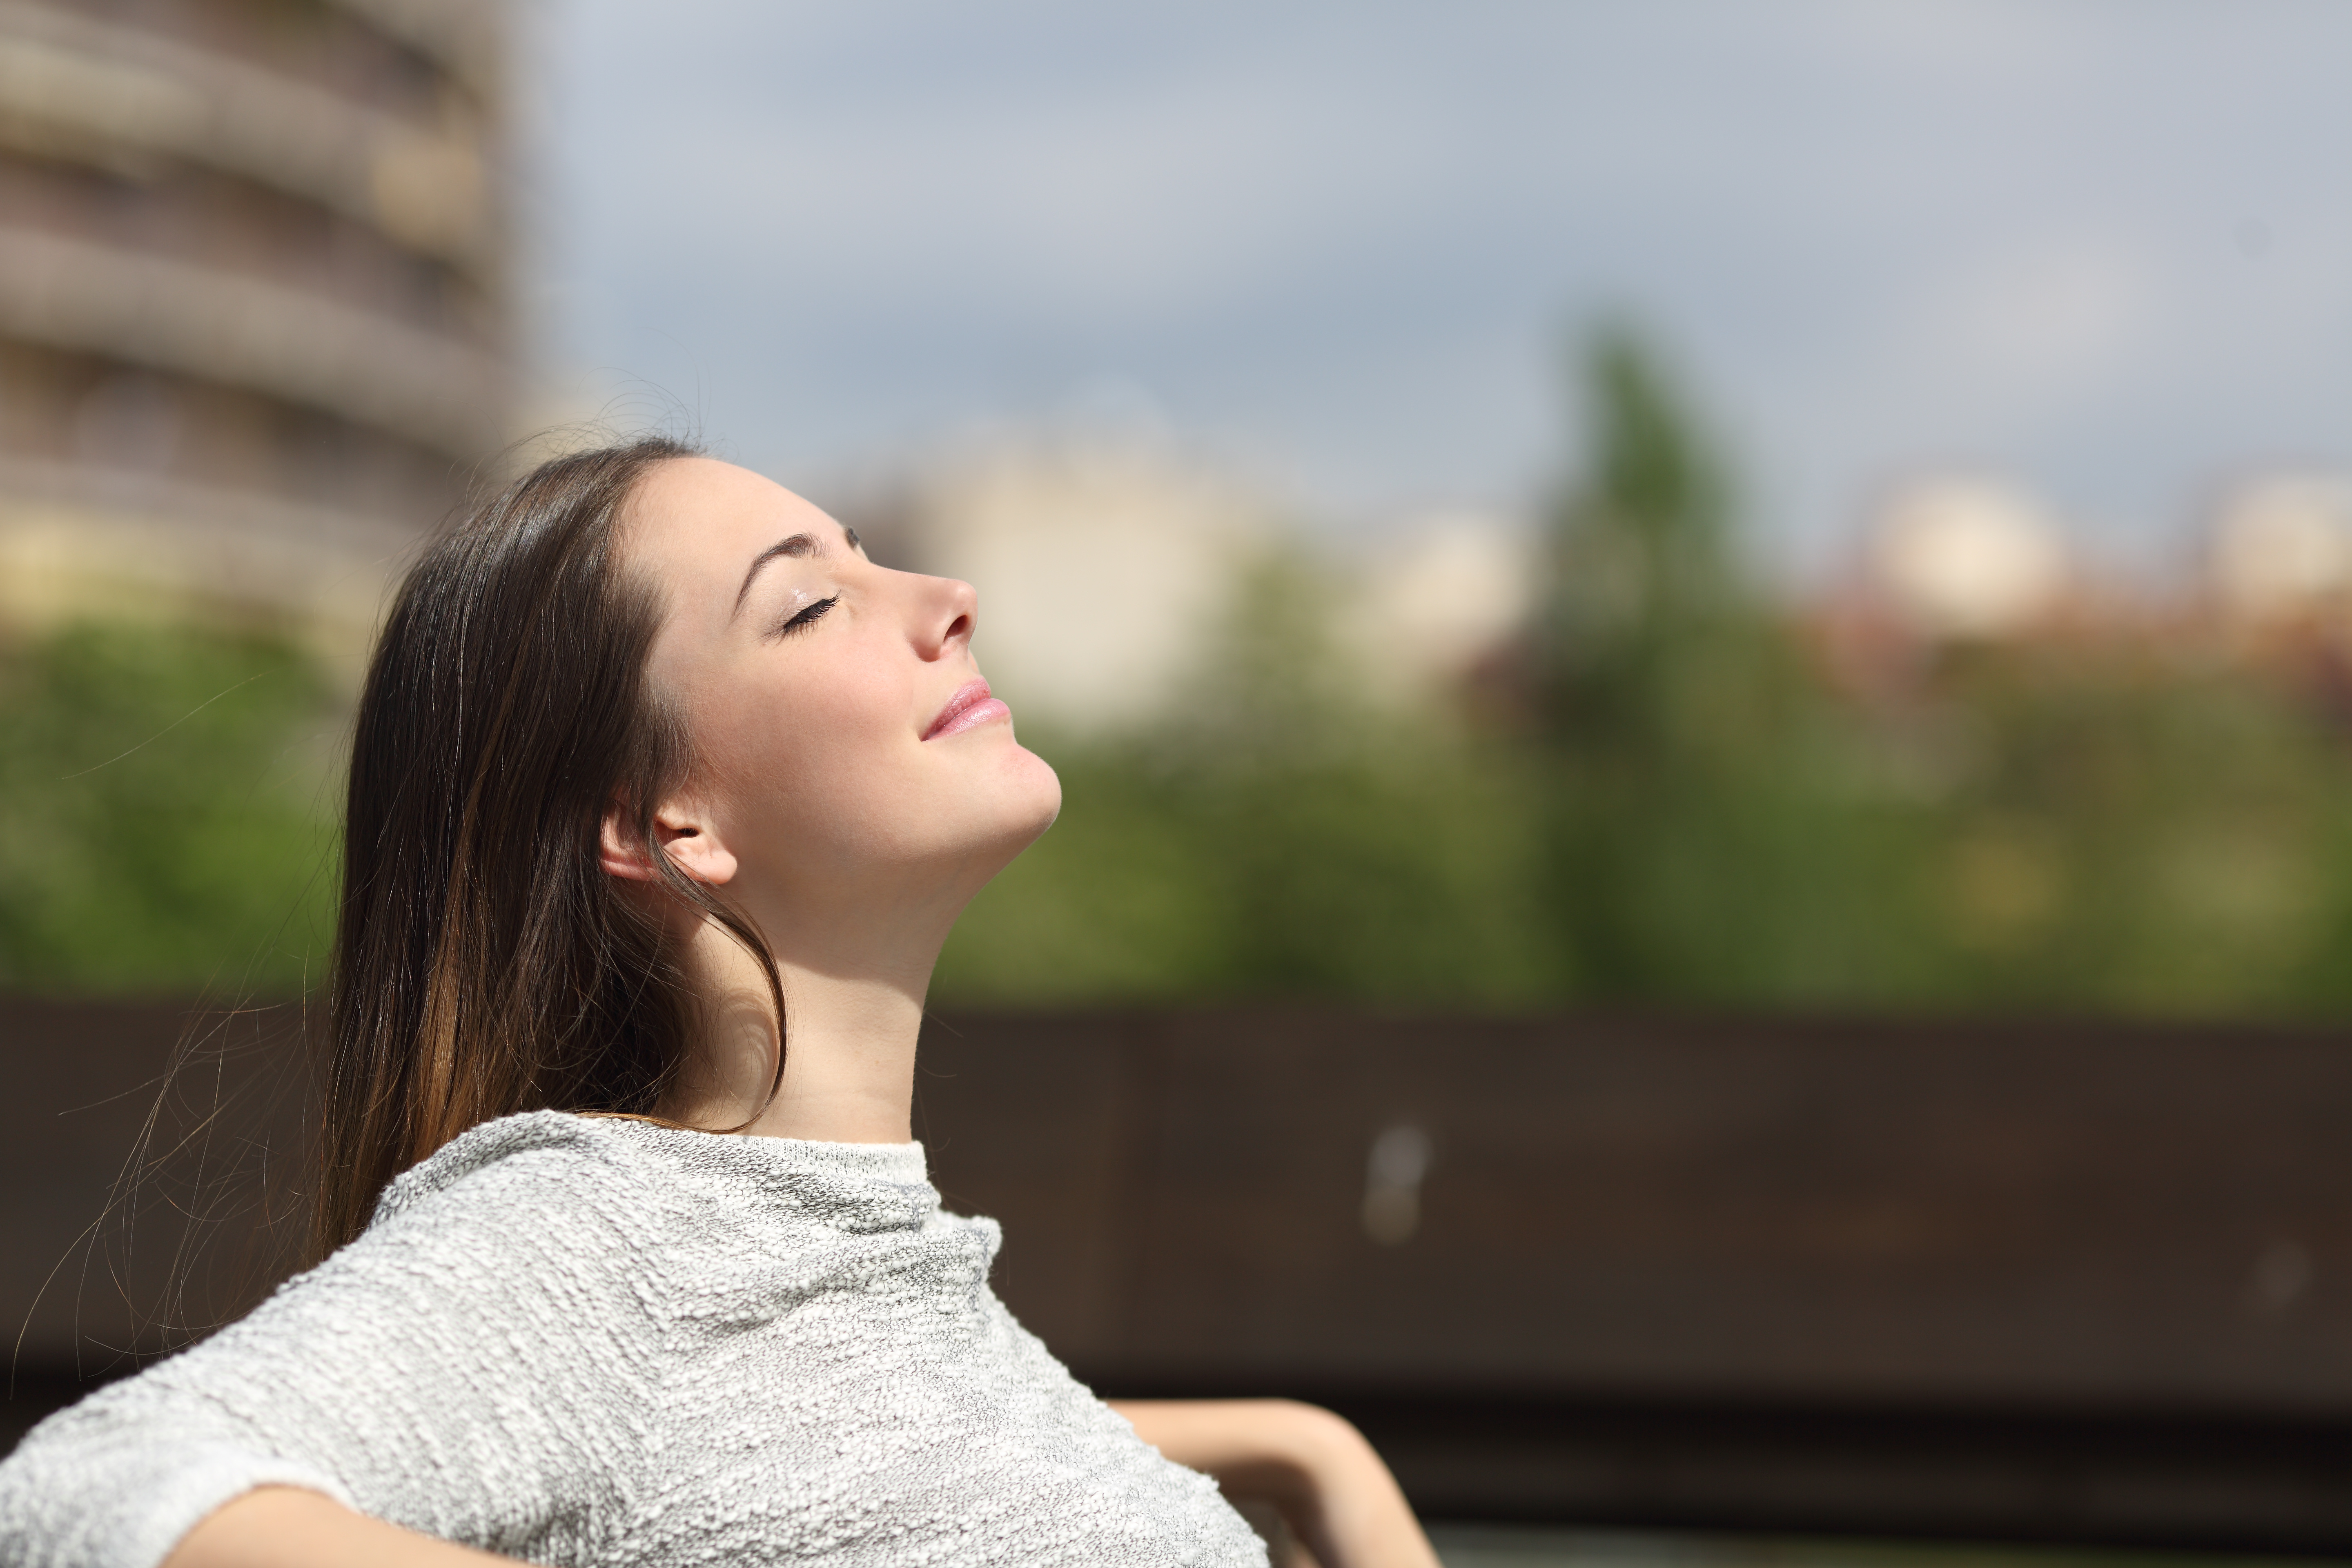 Image of a woman breathing calmly while basking in the sun.